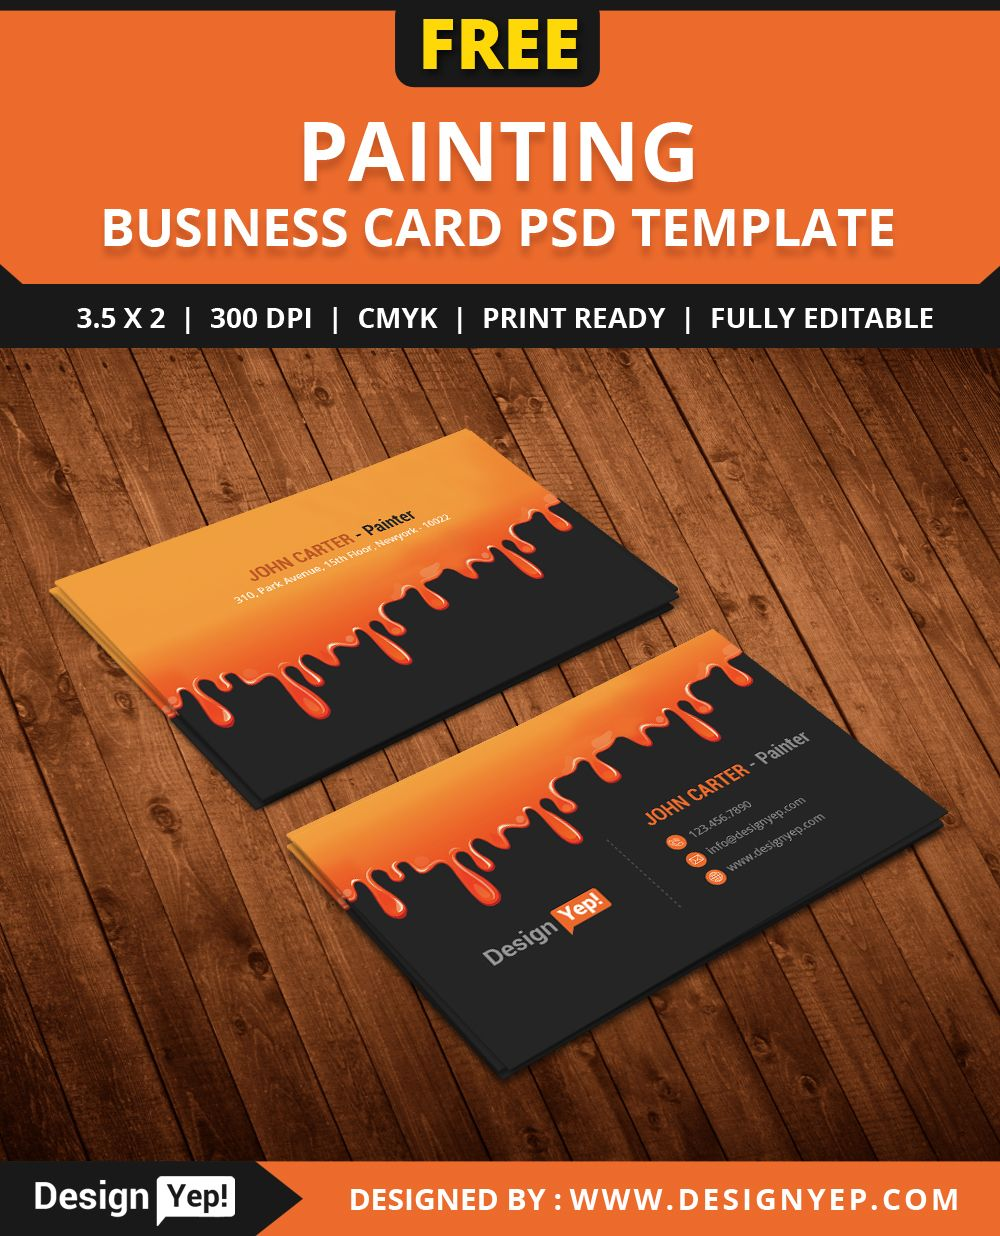 Free painting business card psd template free business card free painting business card psd template wajeb